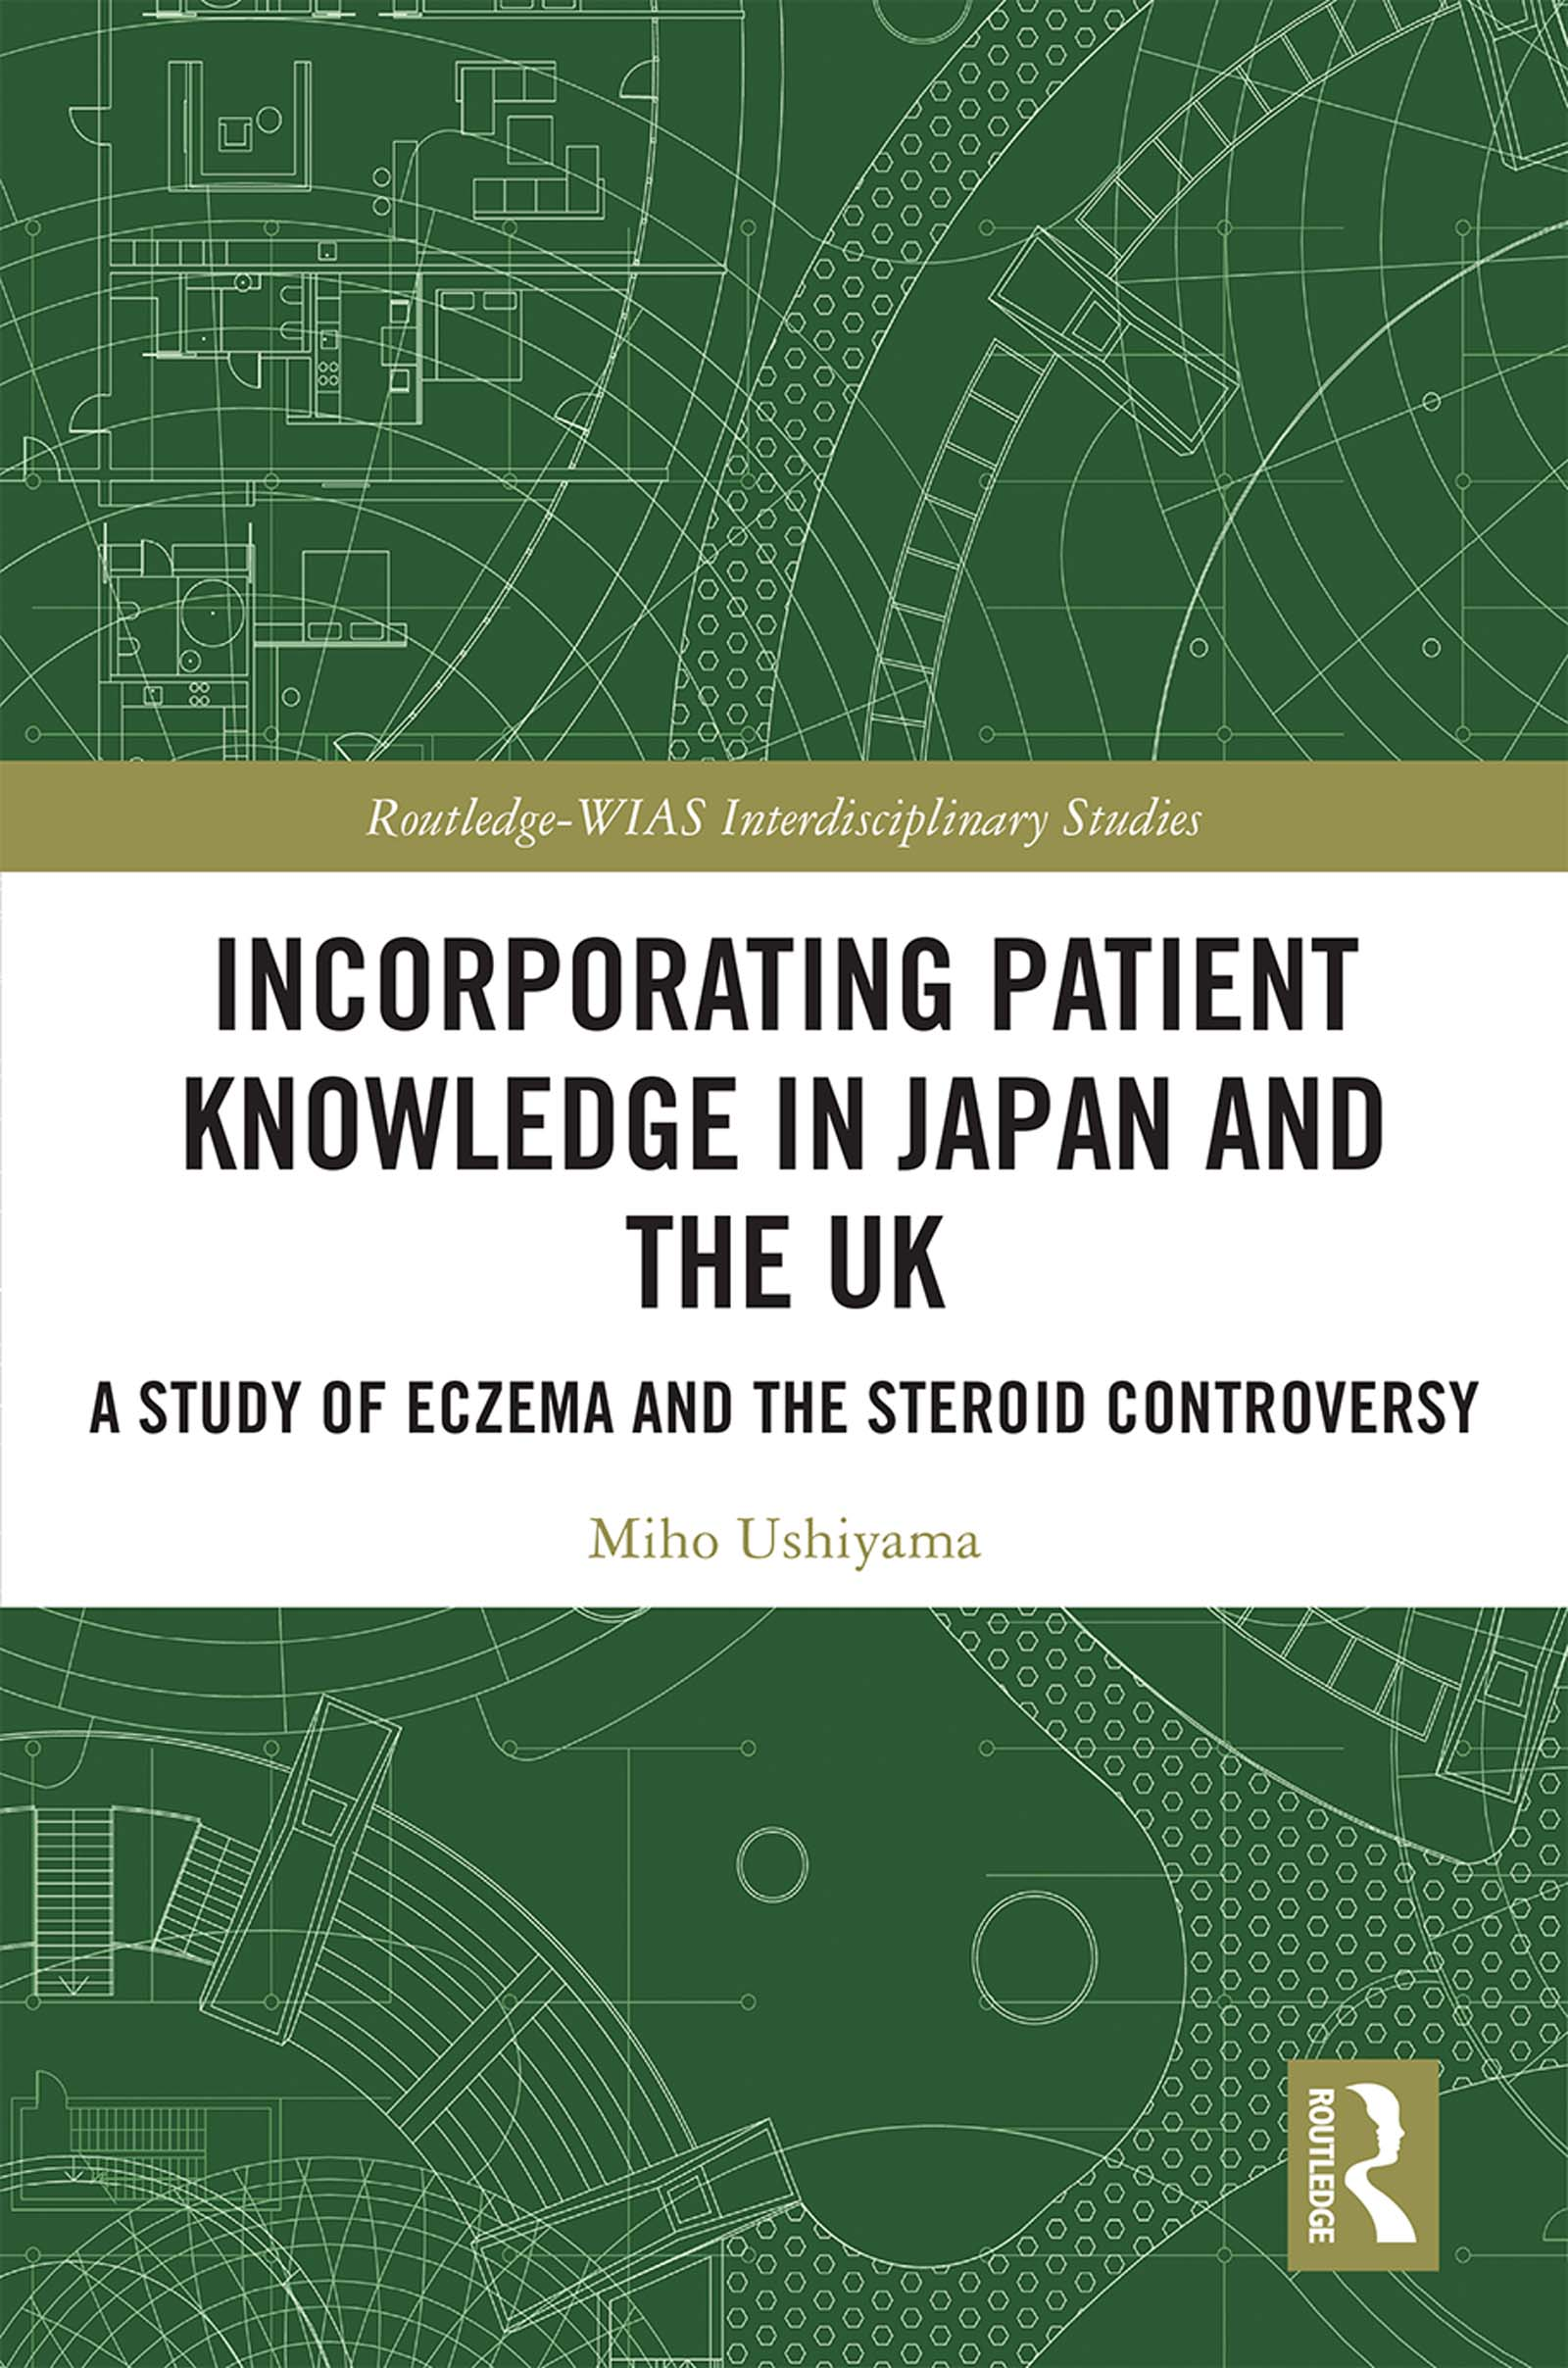 Incorporating Patient Knowledge in Japan and the UK: A Study of Eczema and the Steroid Controversy book cover